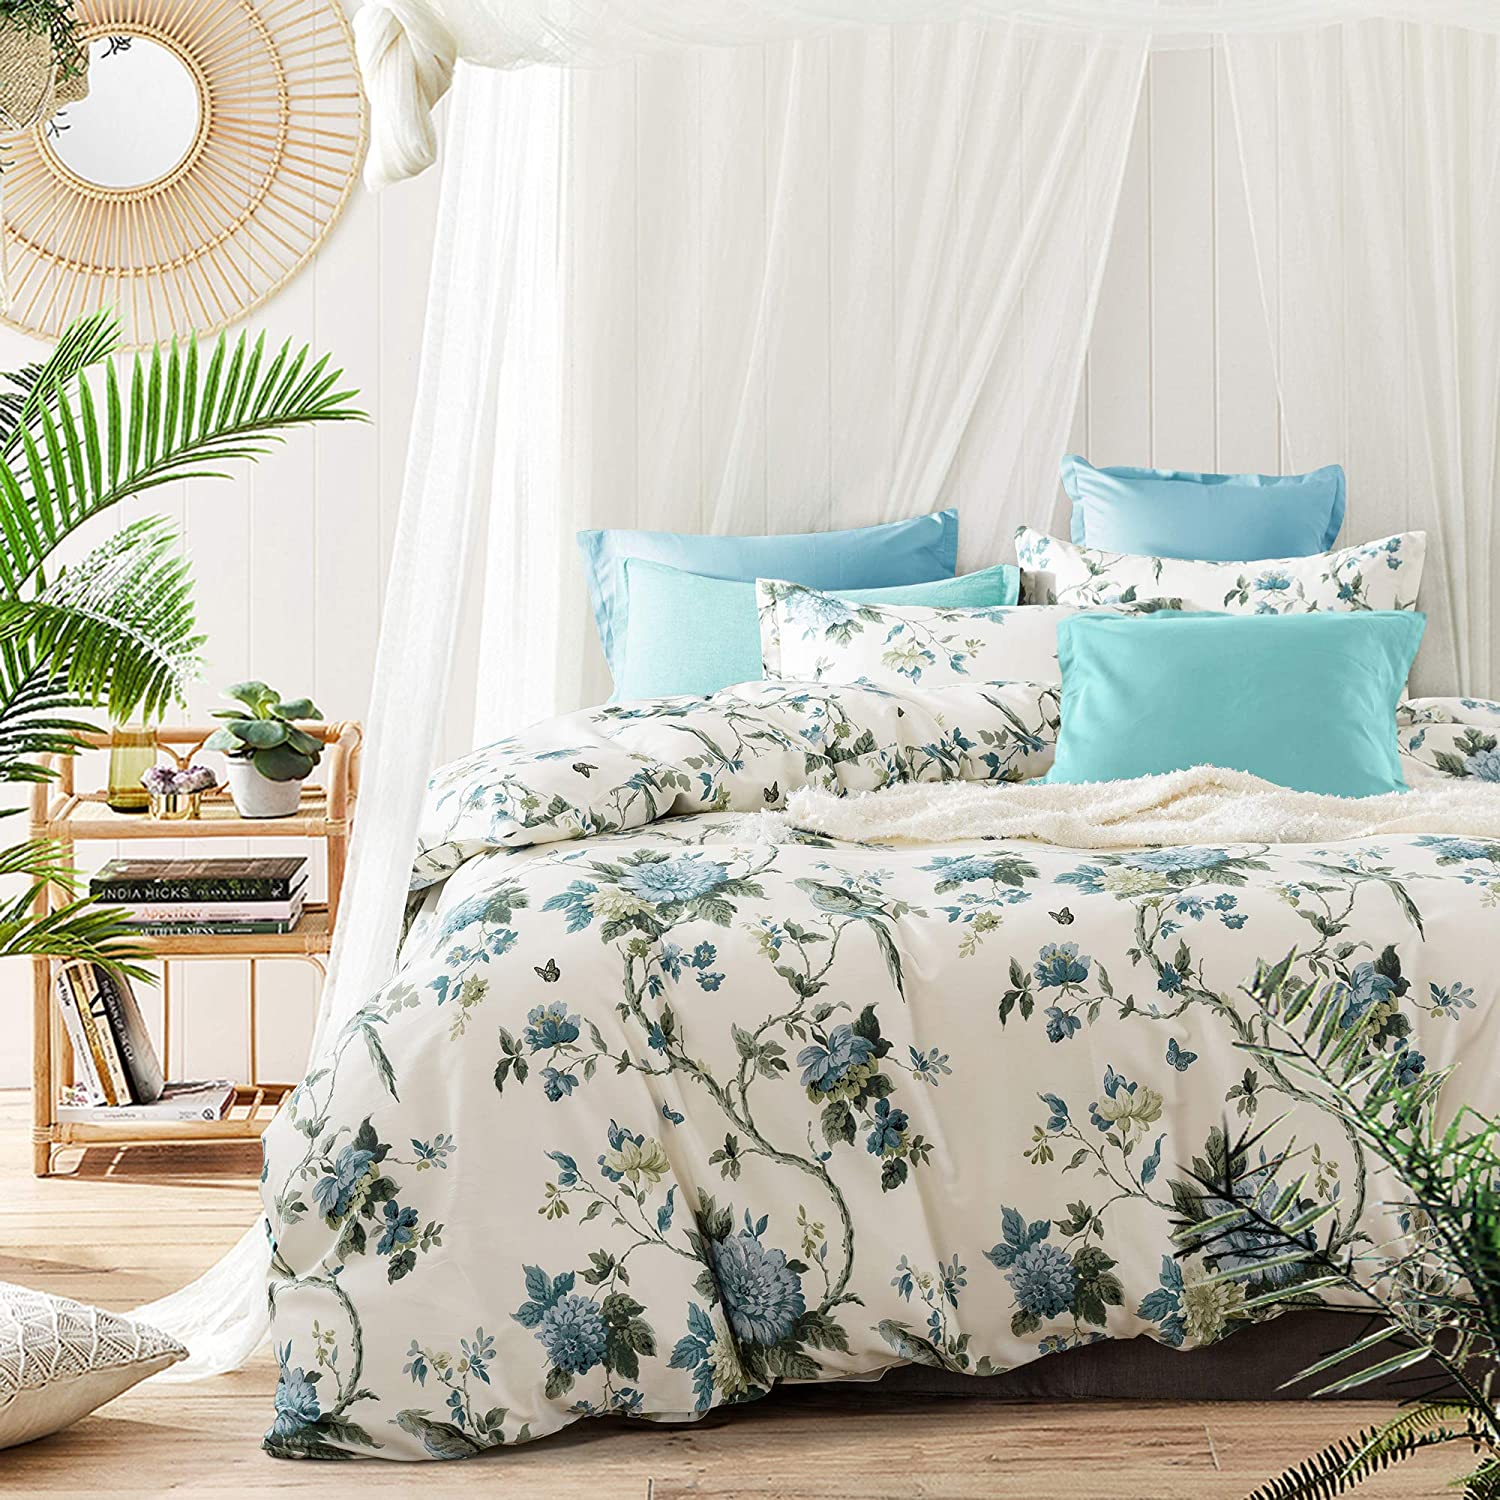 Exotic Modern Floral Print Bedding Birds Flowers Dusty Grey Design 100% Cotton Duvet Cover 3pc Set Hibiscus Blossom Branches in Muted Gray Blue (King, Egret White)